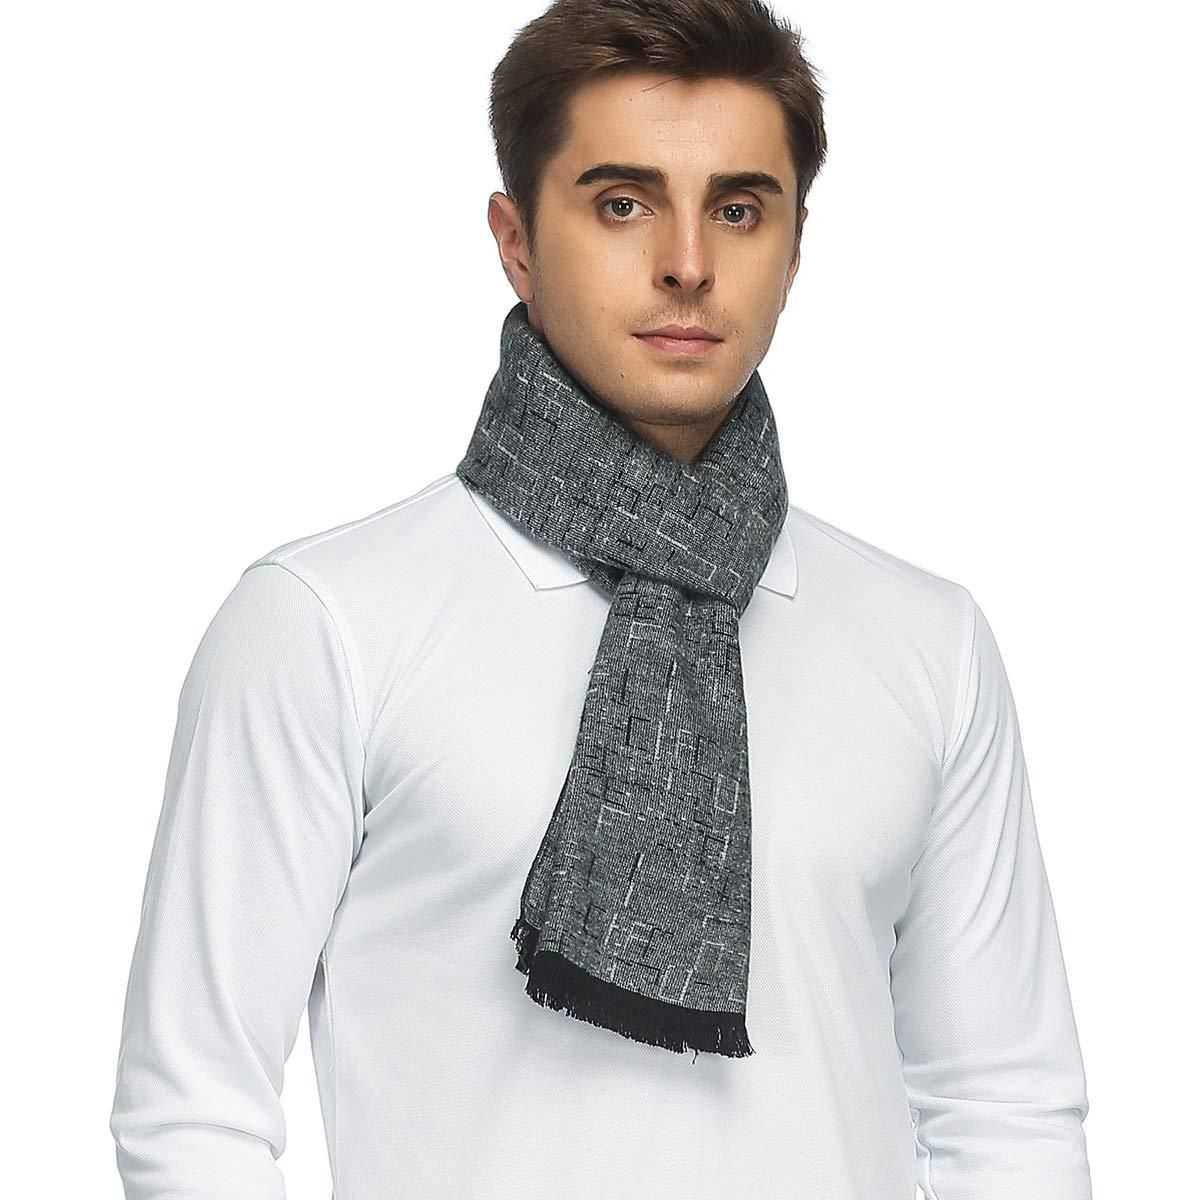 PoilTreeWing Long Soft Tassel Scarf Mens Classic Cashmere Winter Warm Scarf